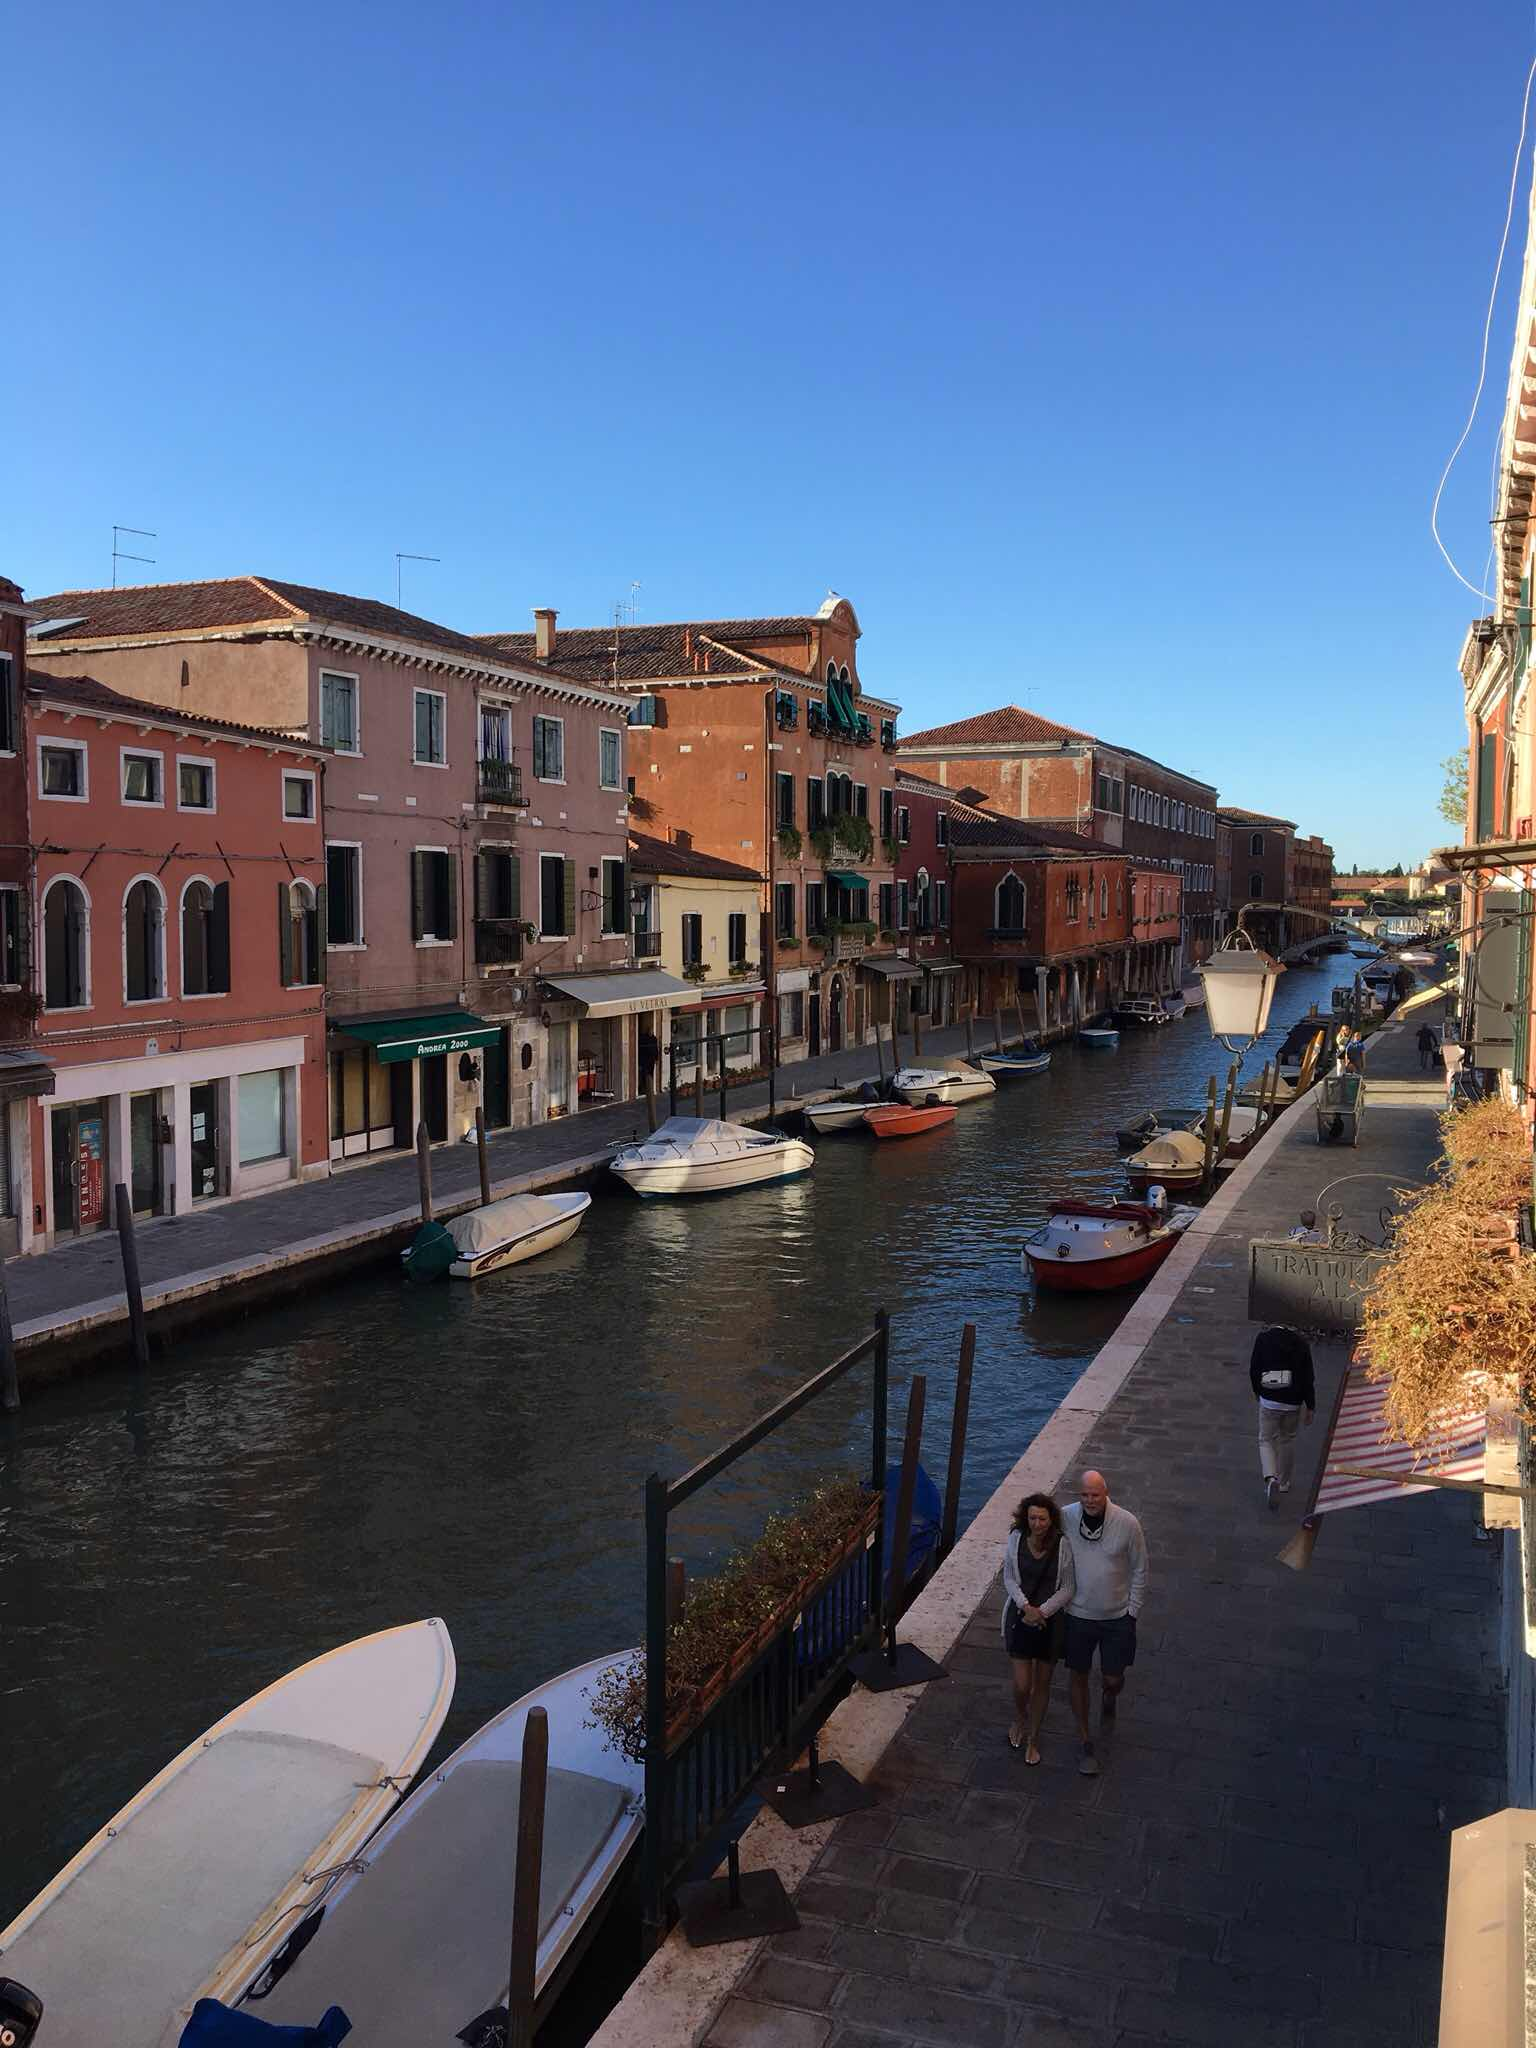 Afternoon view from our room at the Murano Palace